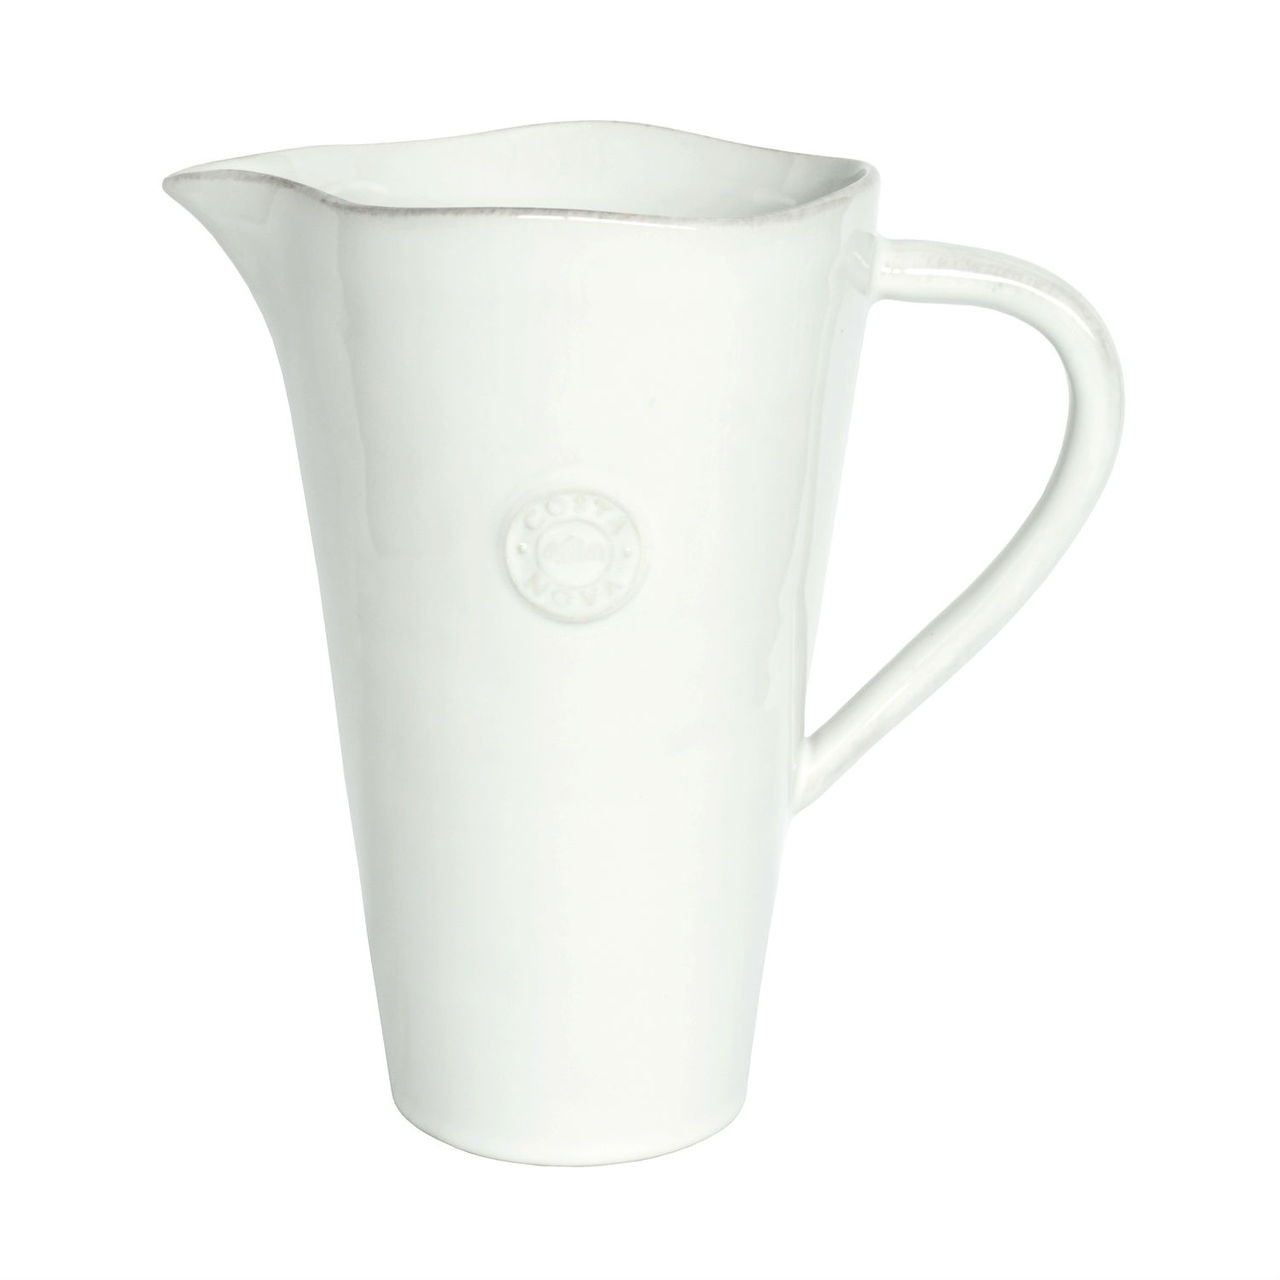 NOVA PITCHER 1.5 L - WHITE